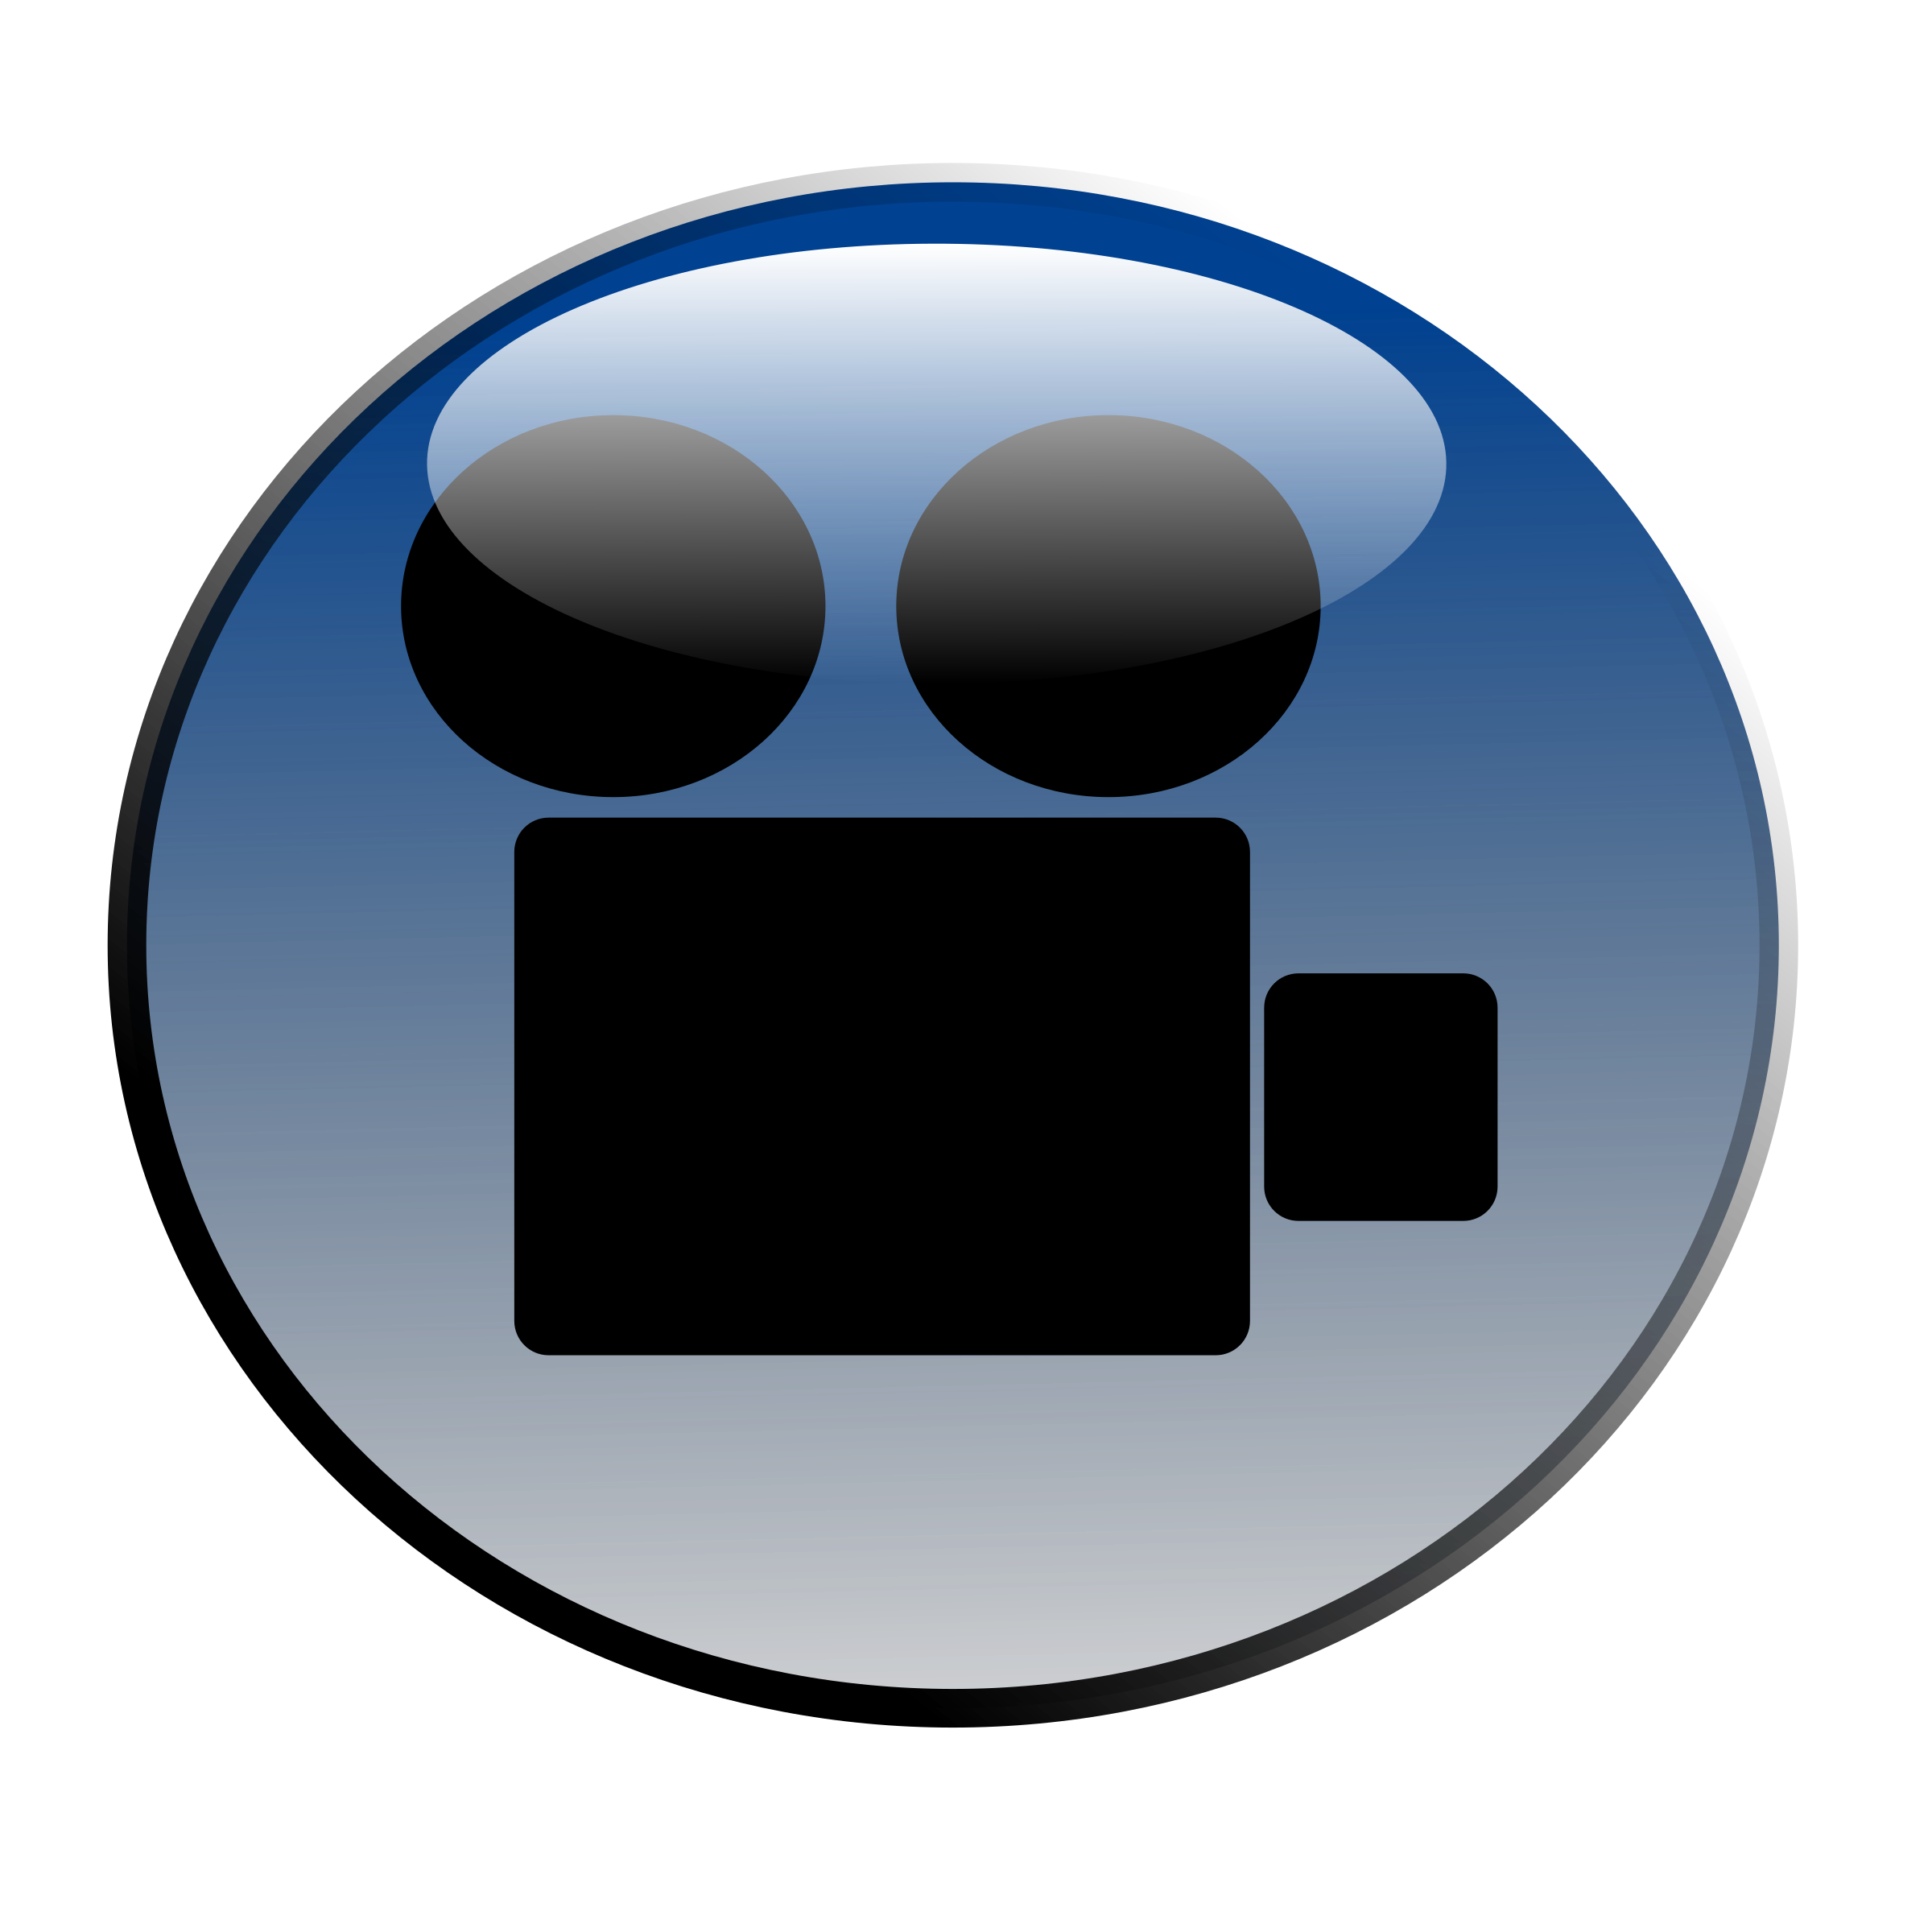 clipart Video big image png. More clipart icon.